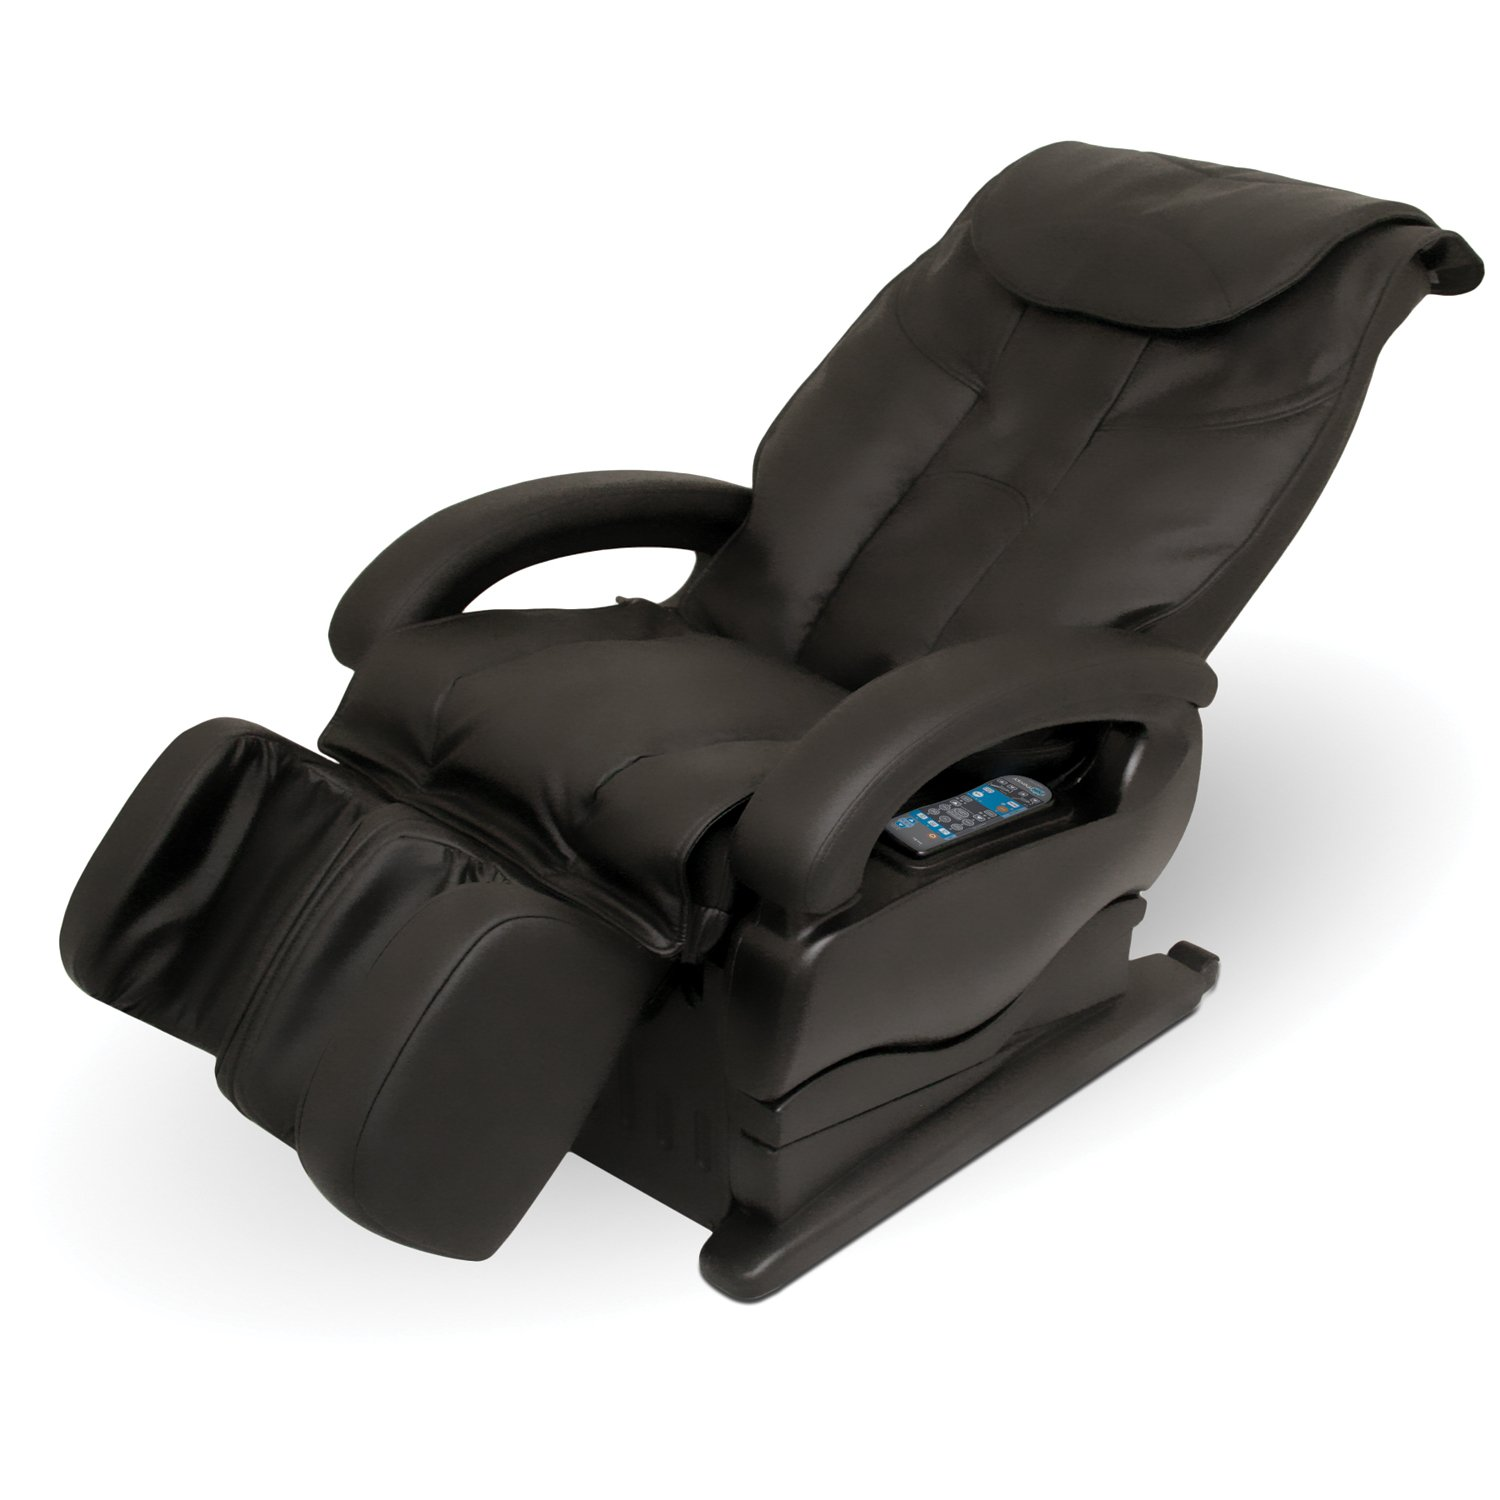 Pure Therapy PT500 Reclining Shiatsu Massage Chair with Remote